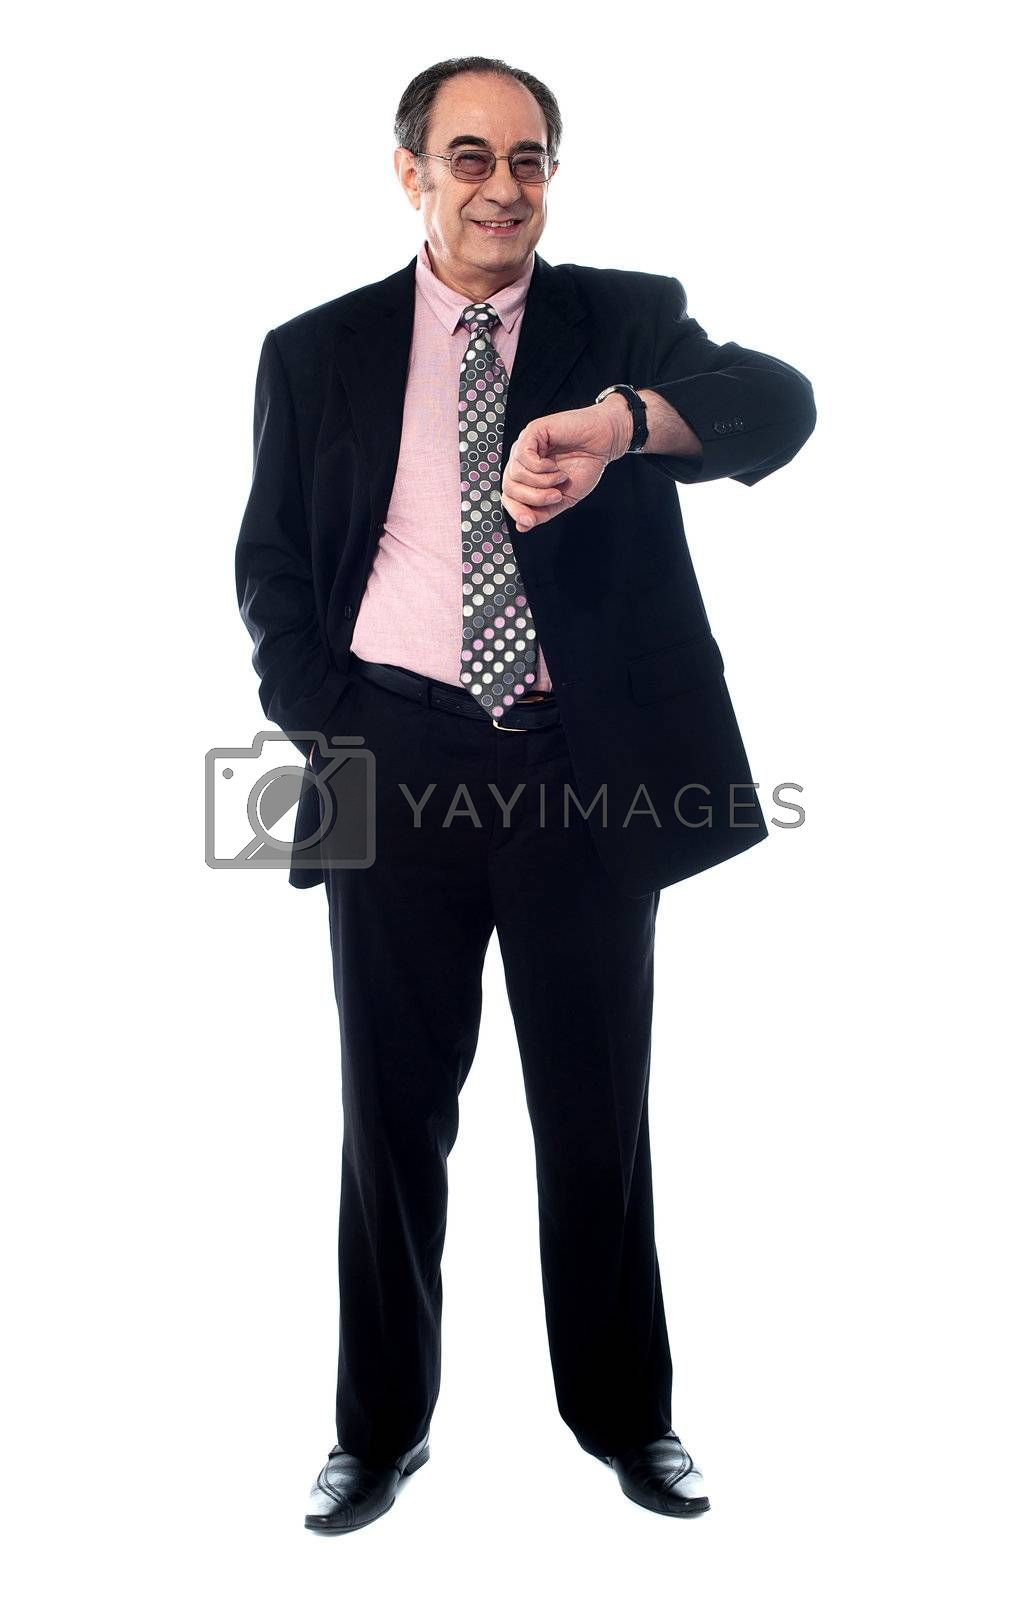 Senior businessperson smiling and taking a look at his watch